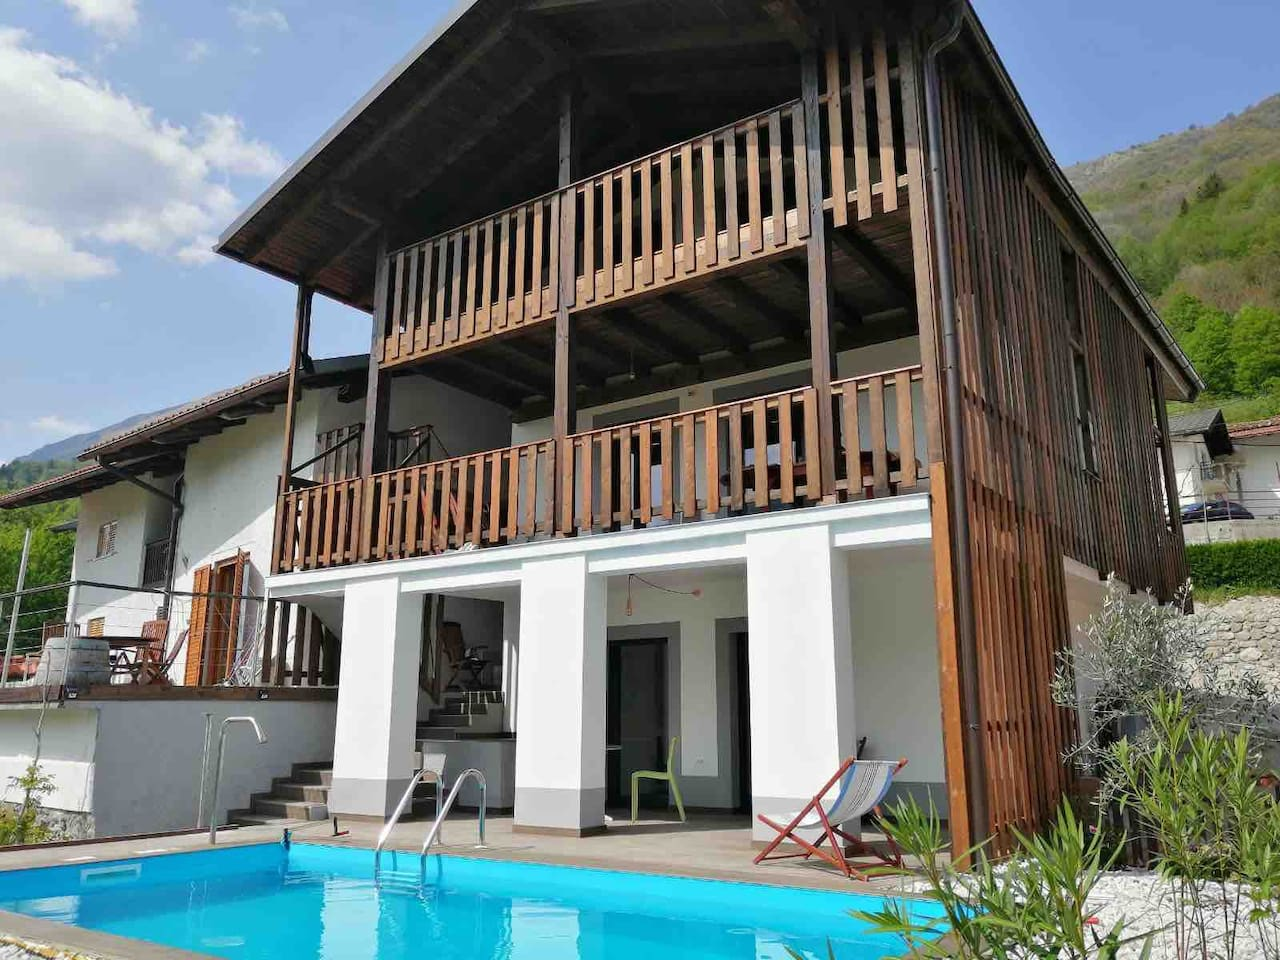 The hisa Hansa is on the first and second floor from the Southern part, we also have a Studio downstairs with the SHARED swimming pool